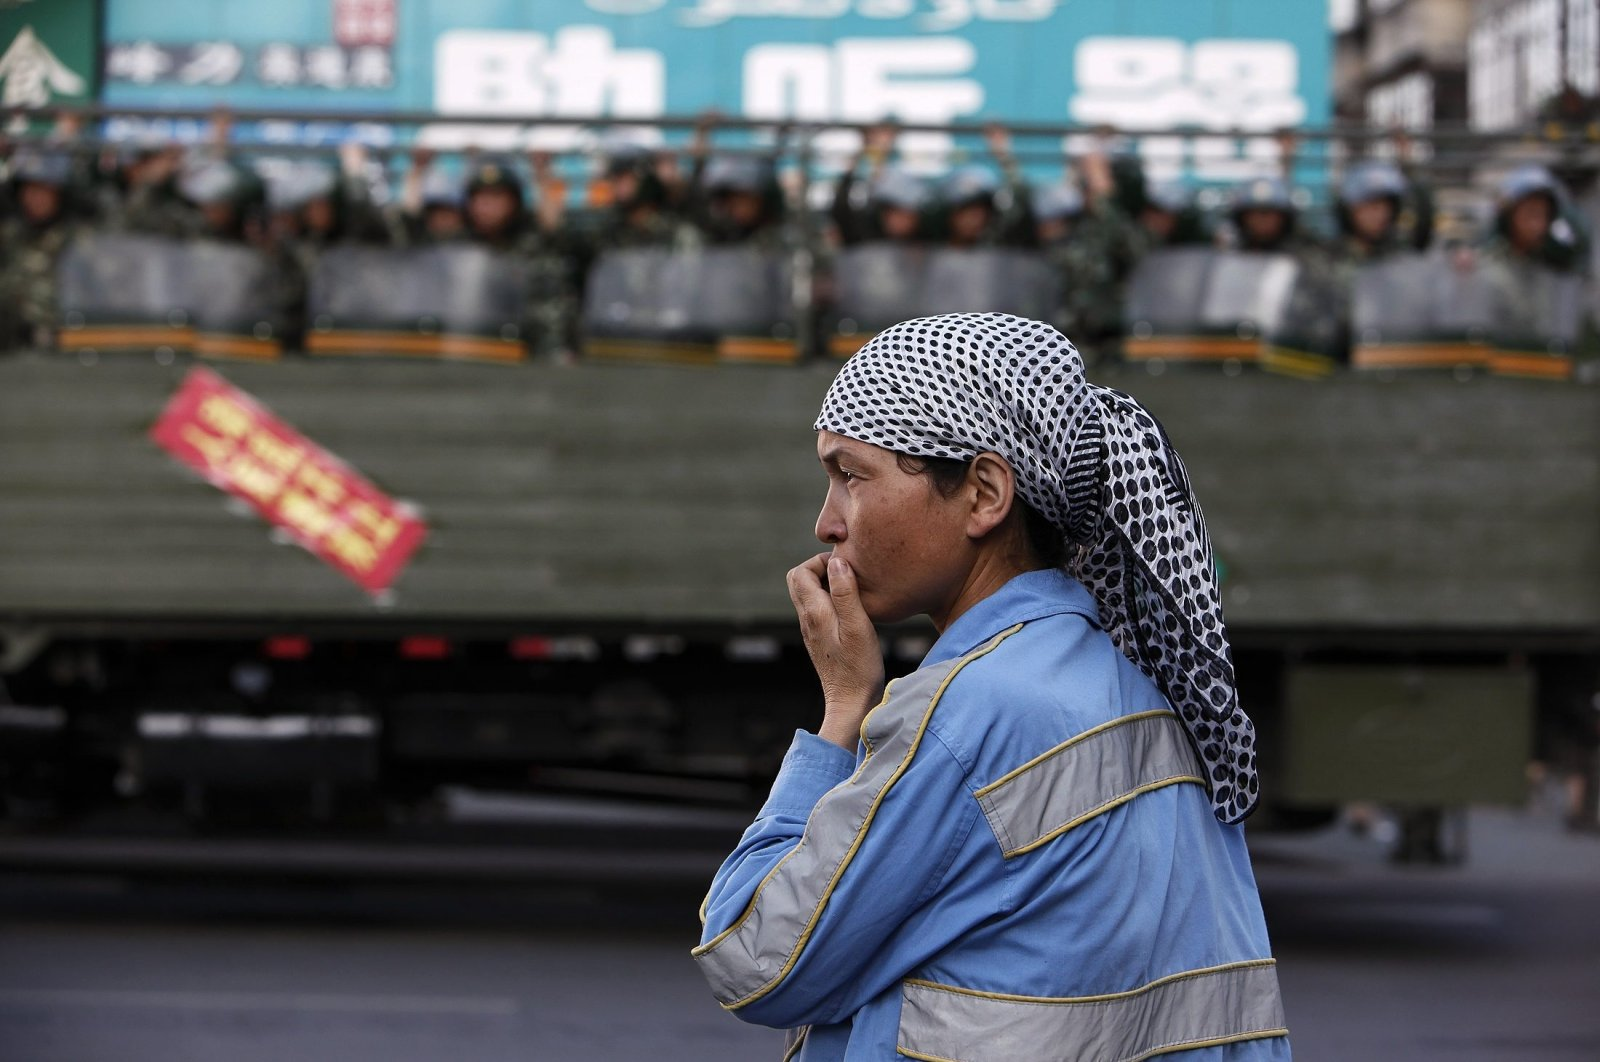 An ethnic Uighur woman stands on the side of a road as Chinese troops stand by on a truck on a main street in Urumqi, China's Xinjiang Autonomous Region, July 9, 2009. (Reuters Photo)